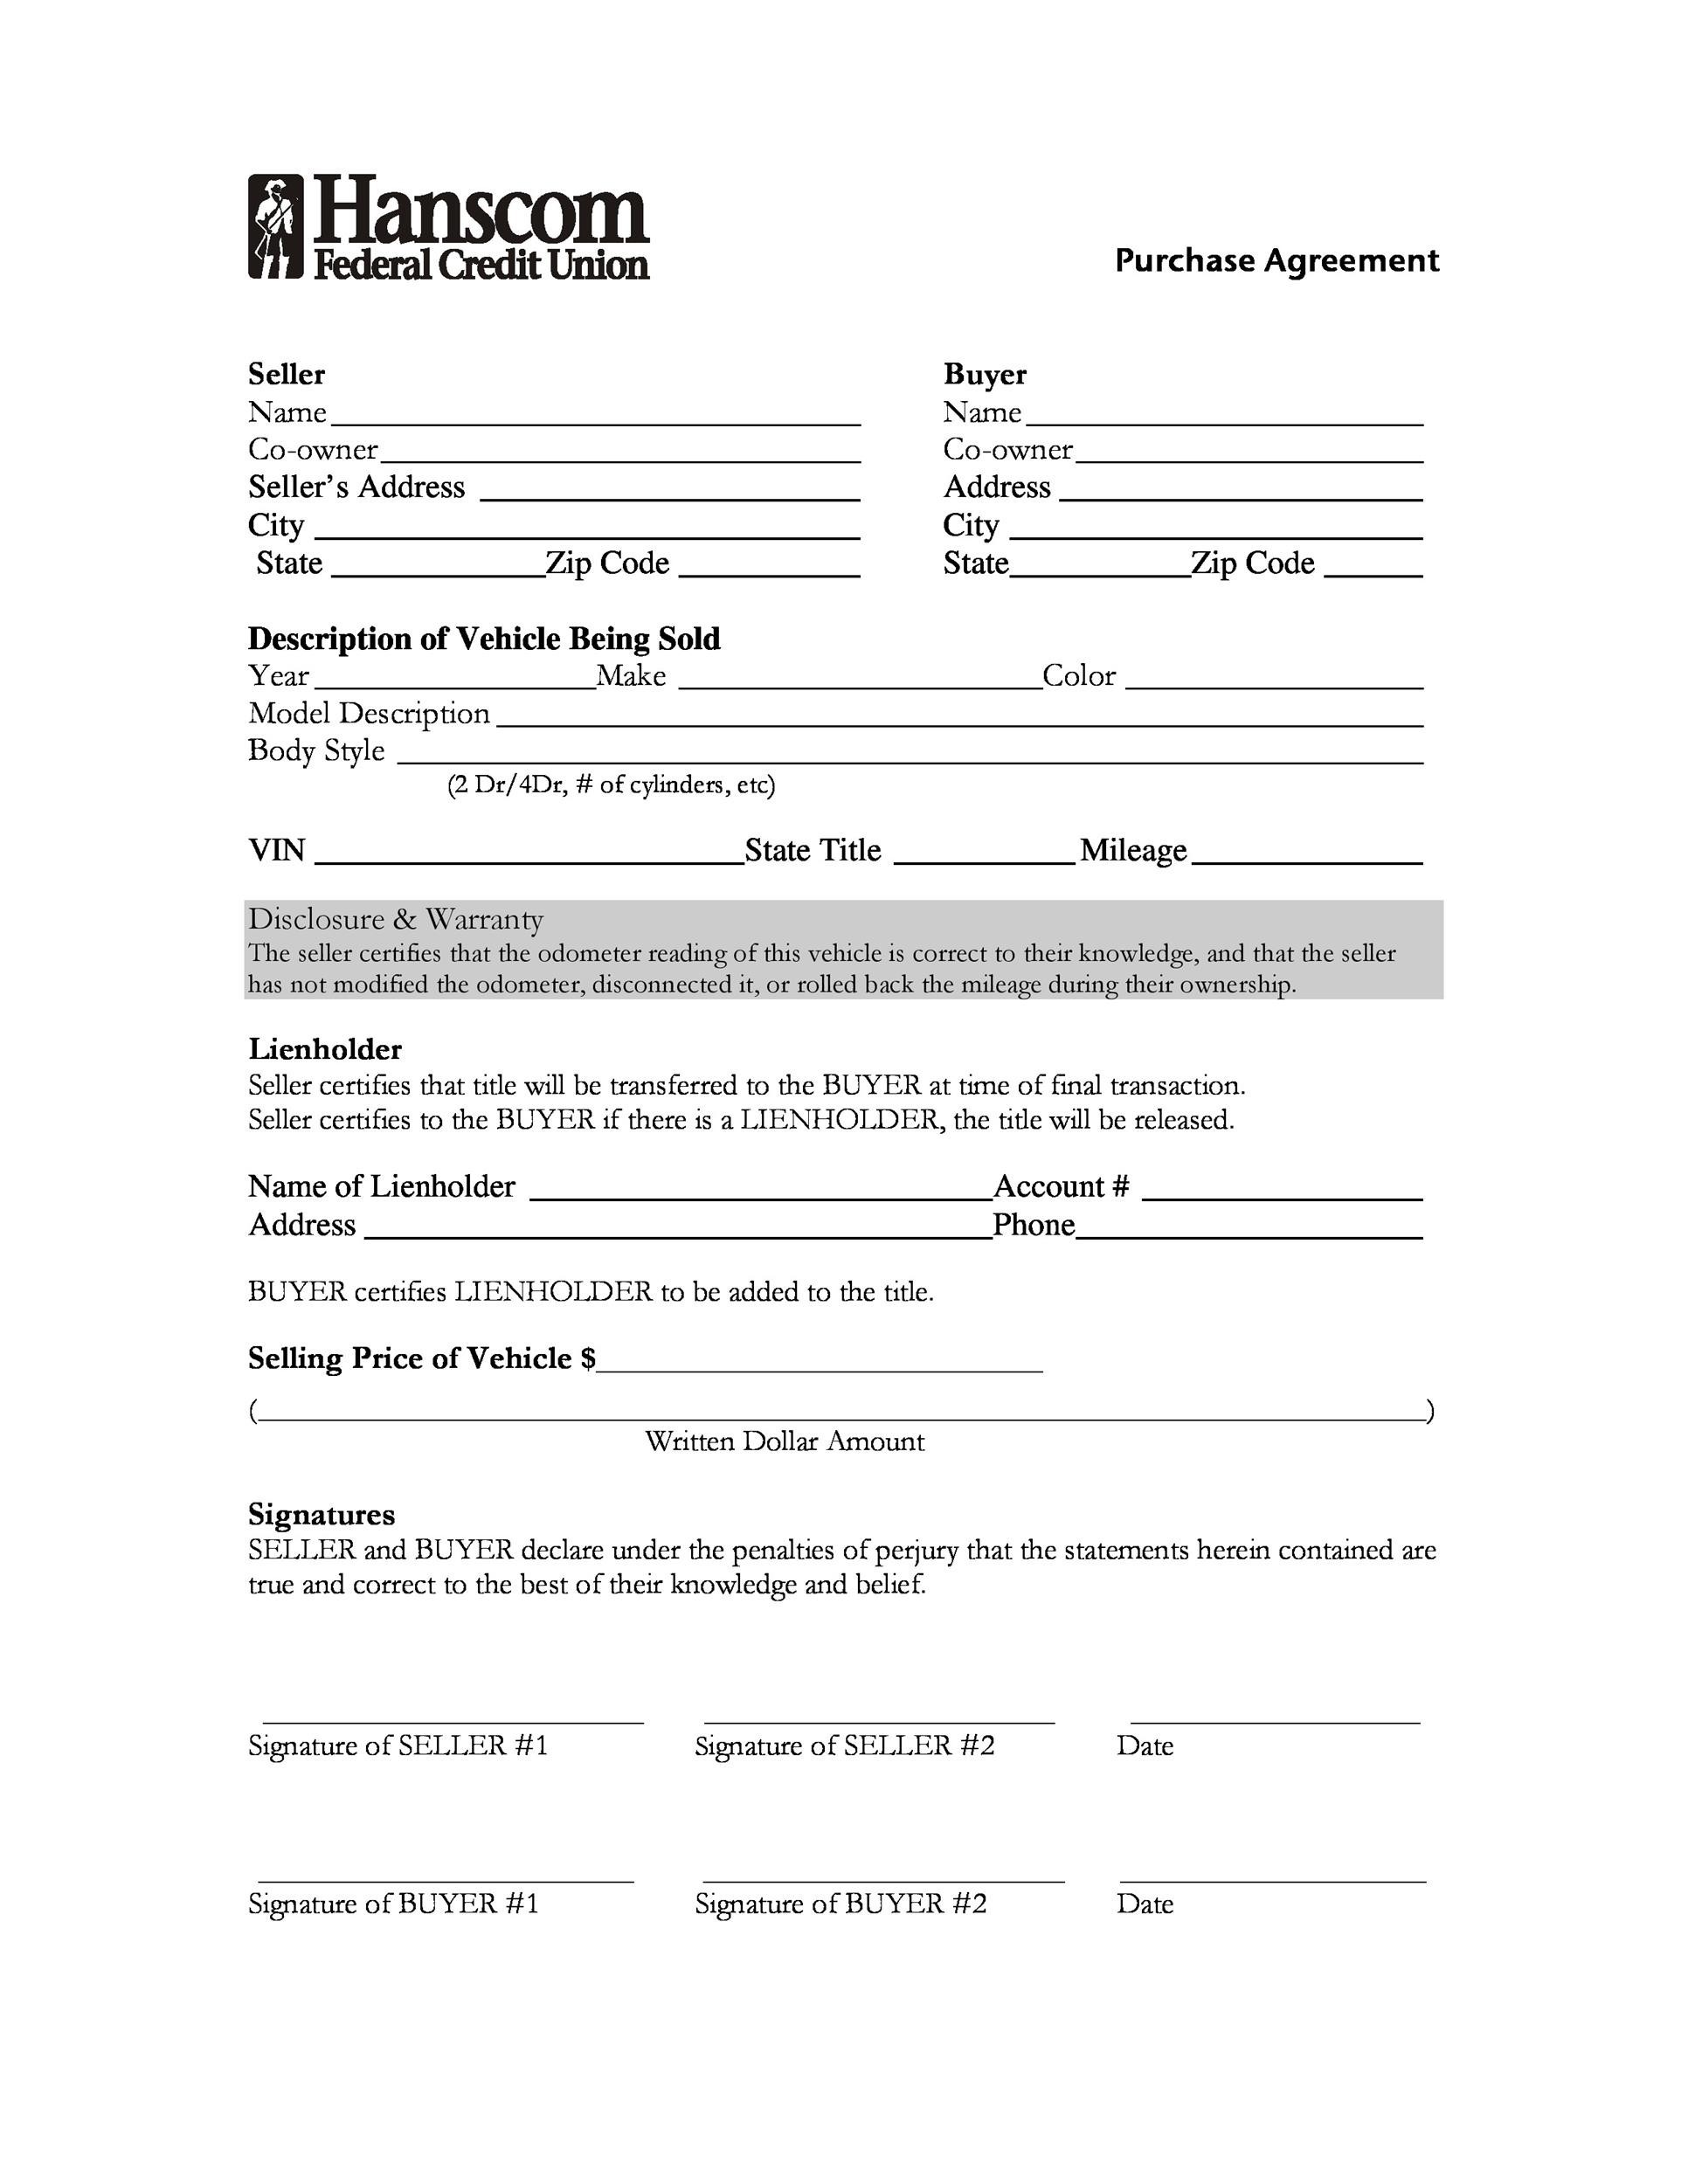 Vehicle Purchase Agreement Form Ukrandiffusion